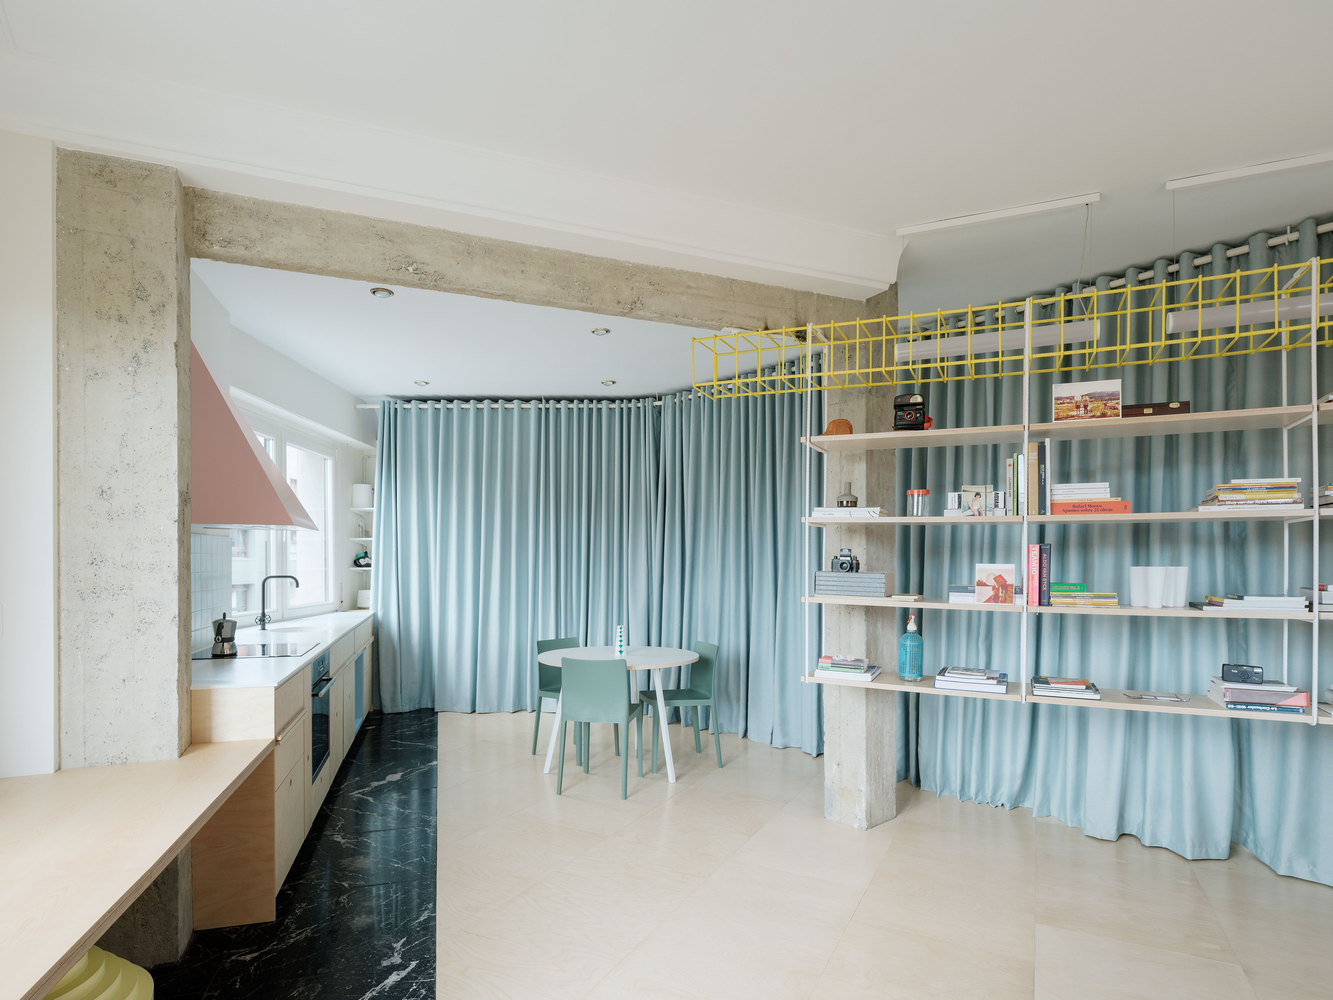 Gallery Of Reused And Recycled Materials In 10 Interior Design Projects 3